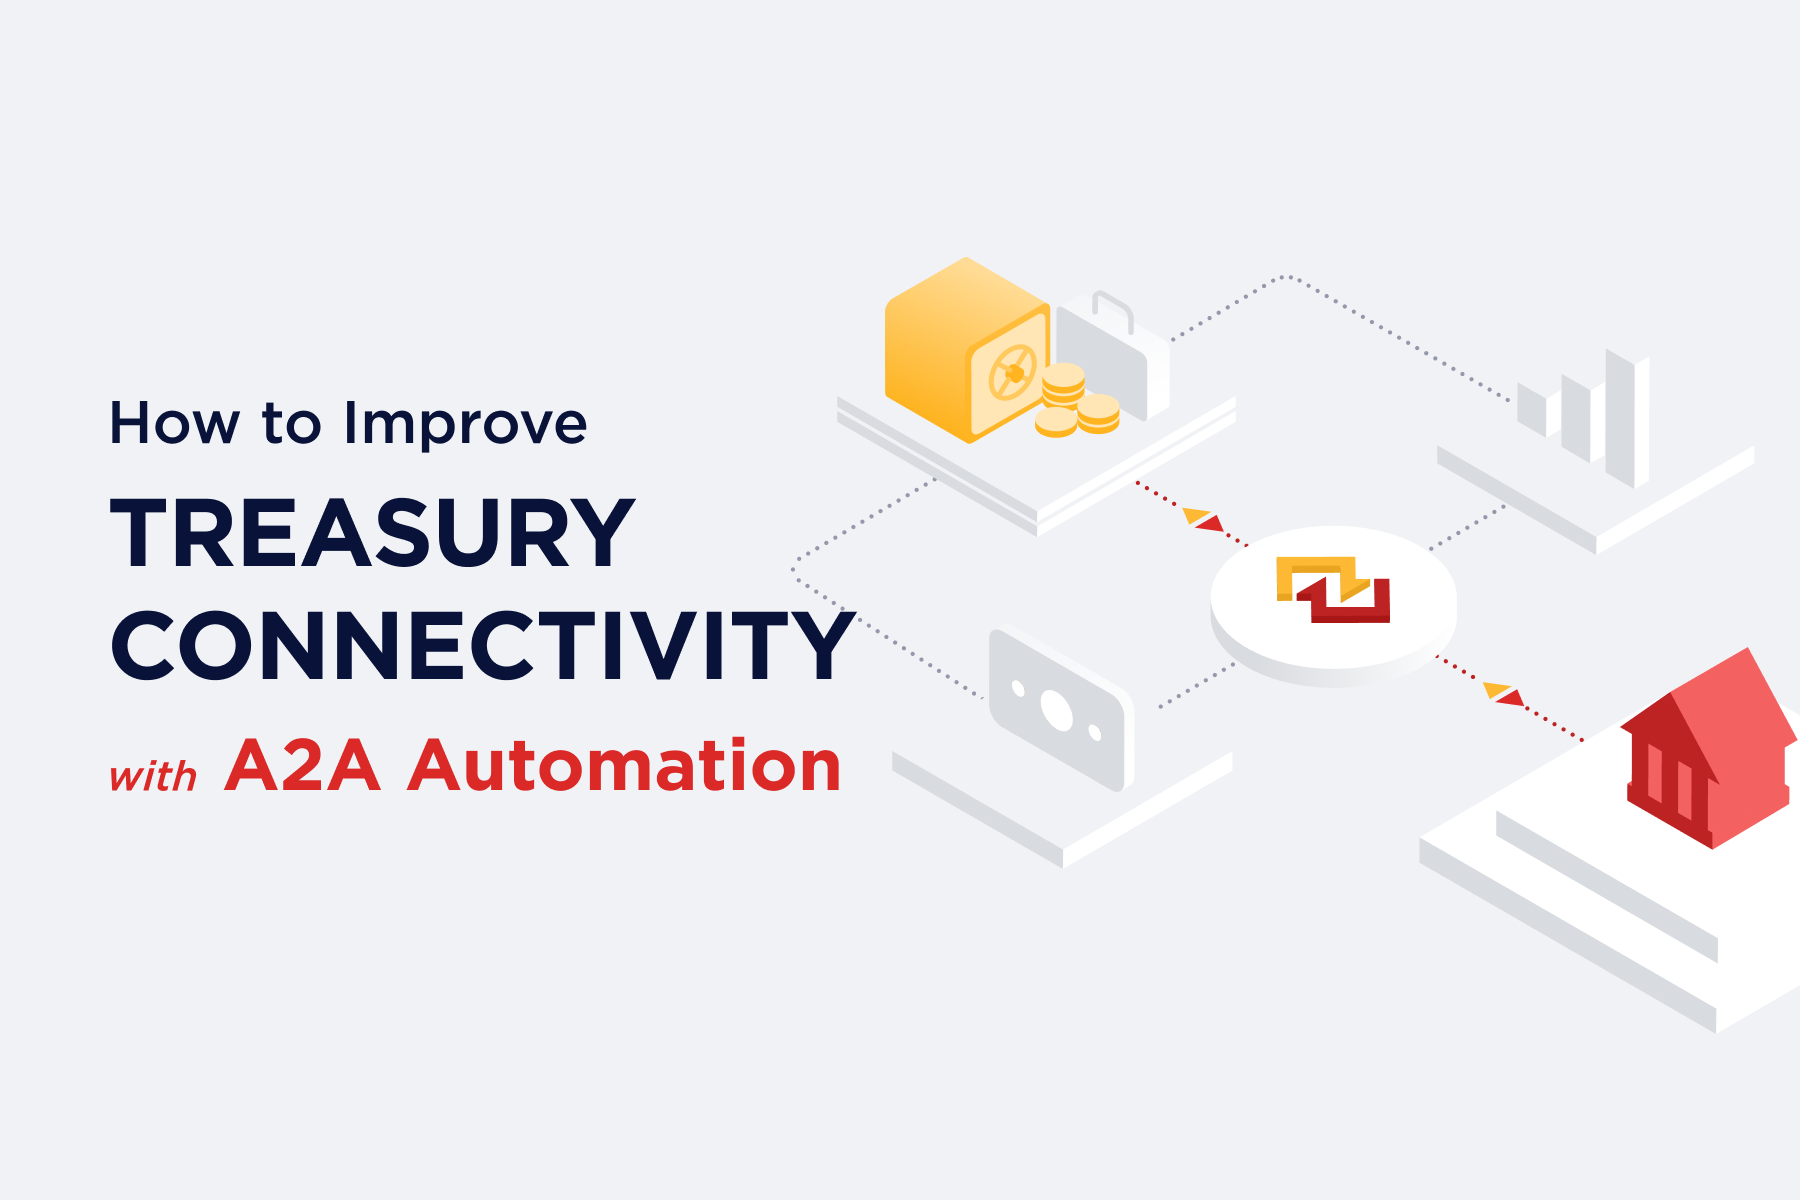 treasury-connectivity-with-a2a-payments